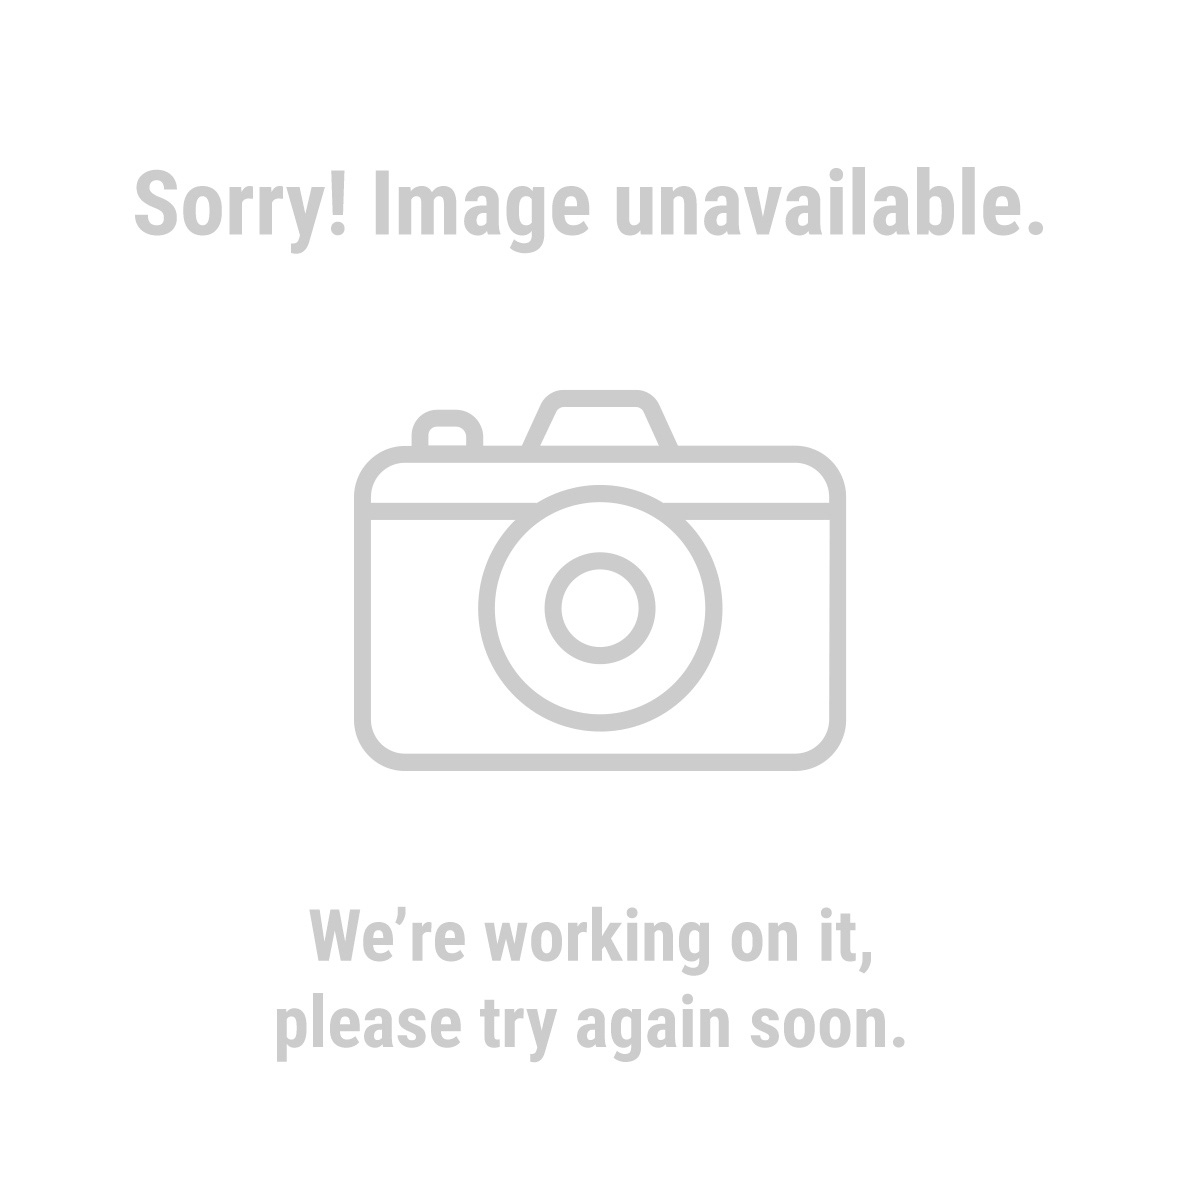 47546 Weatherproof Security Camera with Night Vision